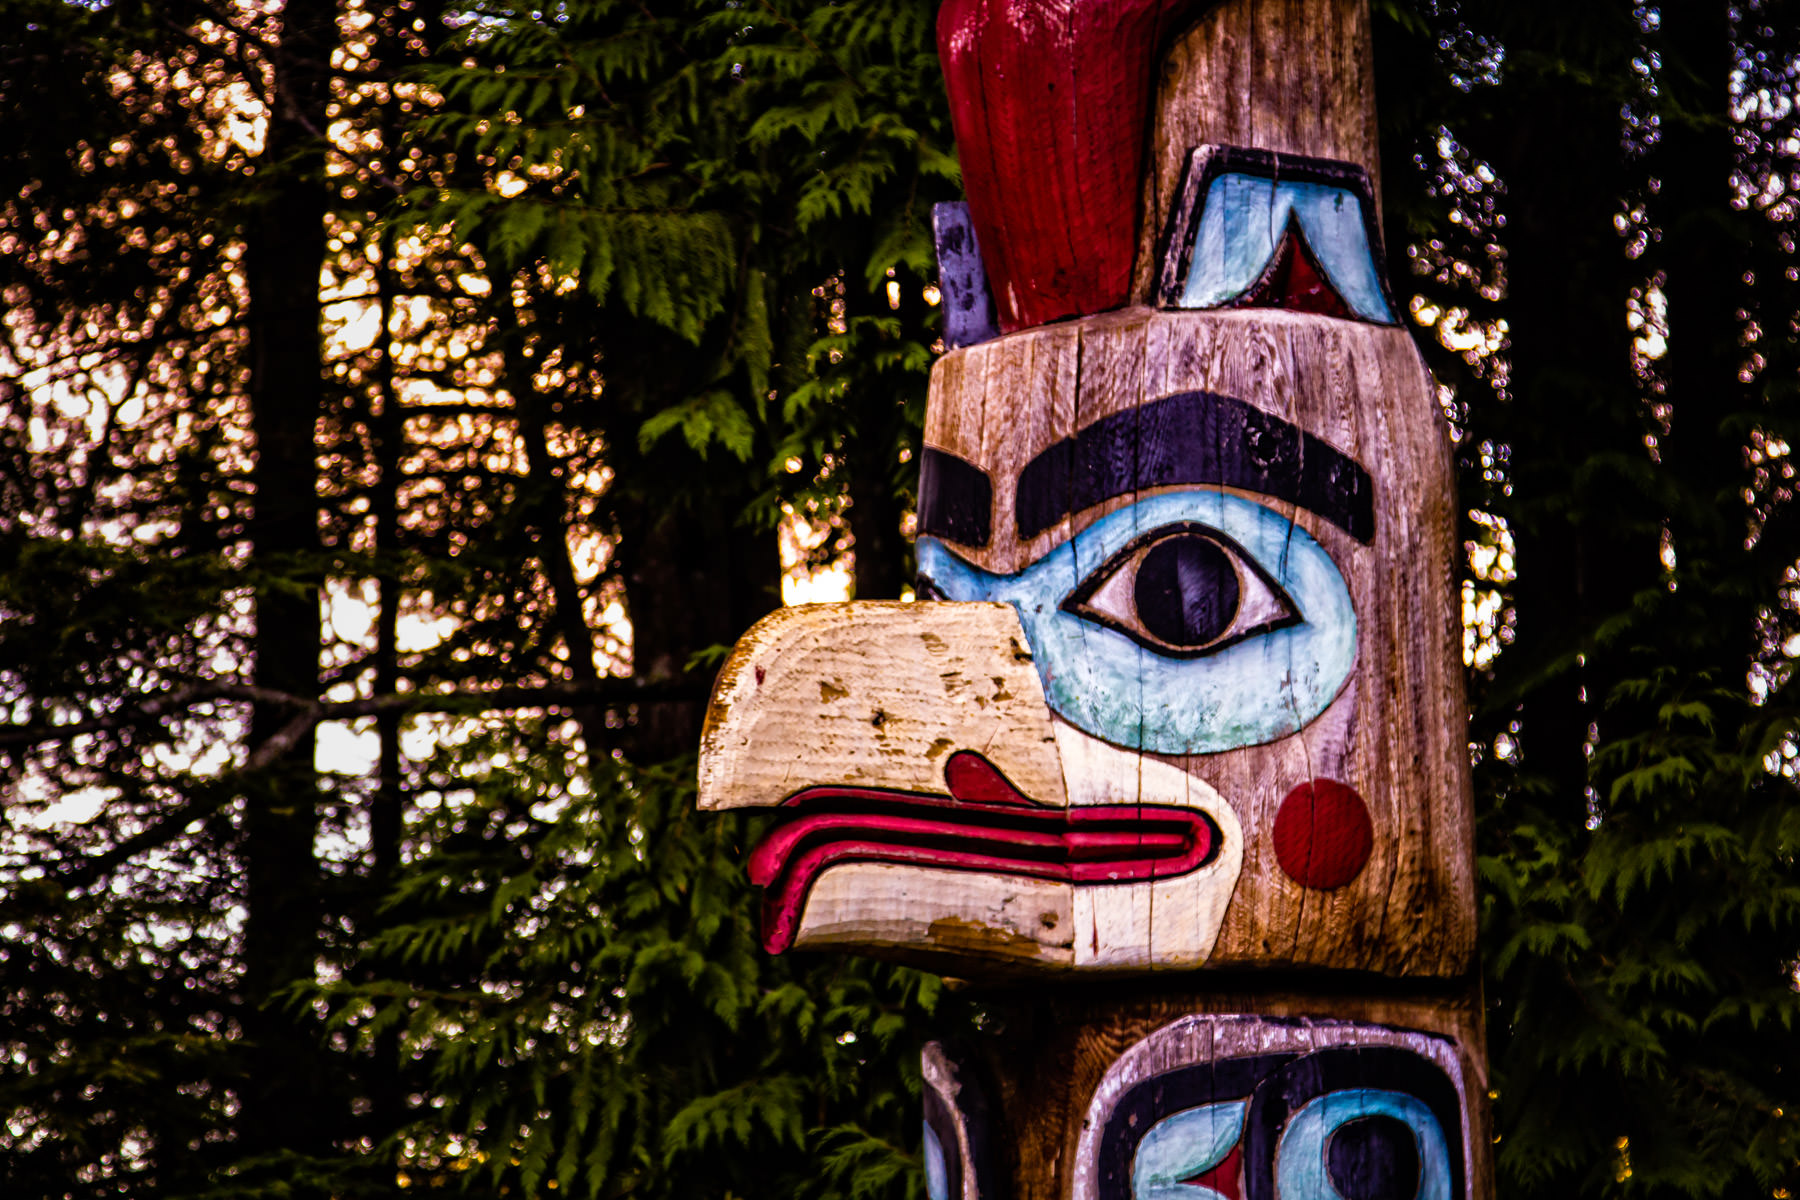 Detail of a totem pole at Totem Bight State Historical Park in Ketchikan, Alaska. This pole represents Raven-at-the-Head-of-Nass, from whom Raven stole daylight